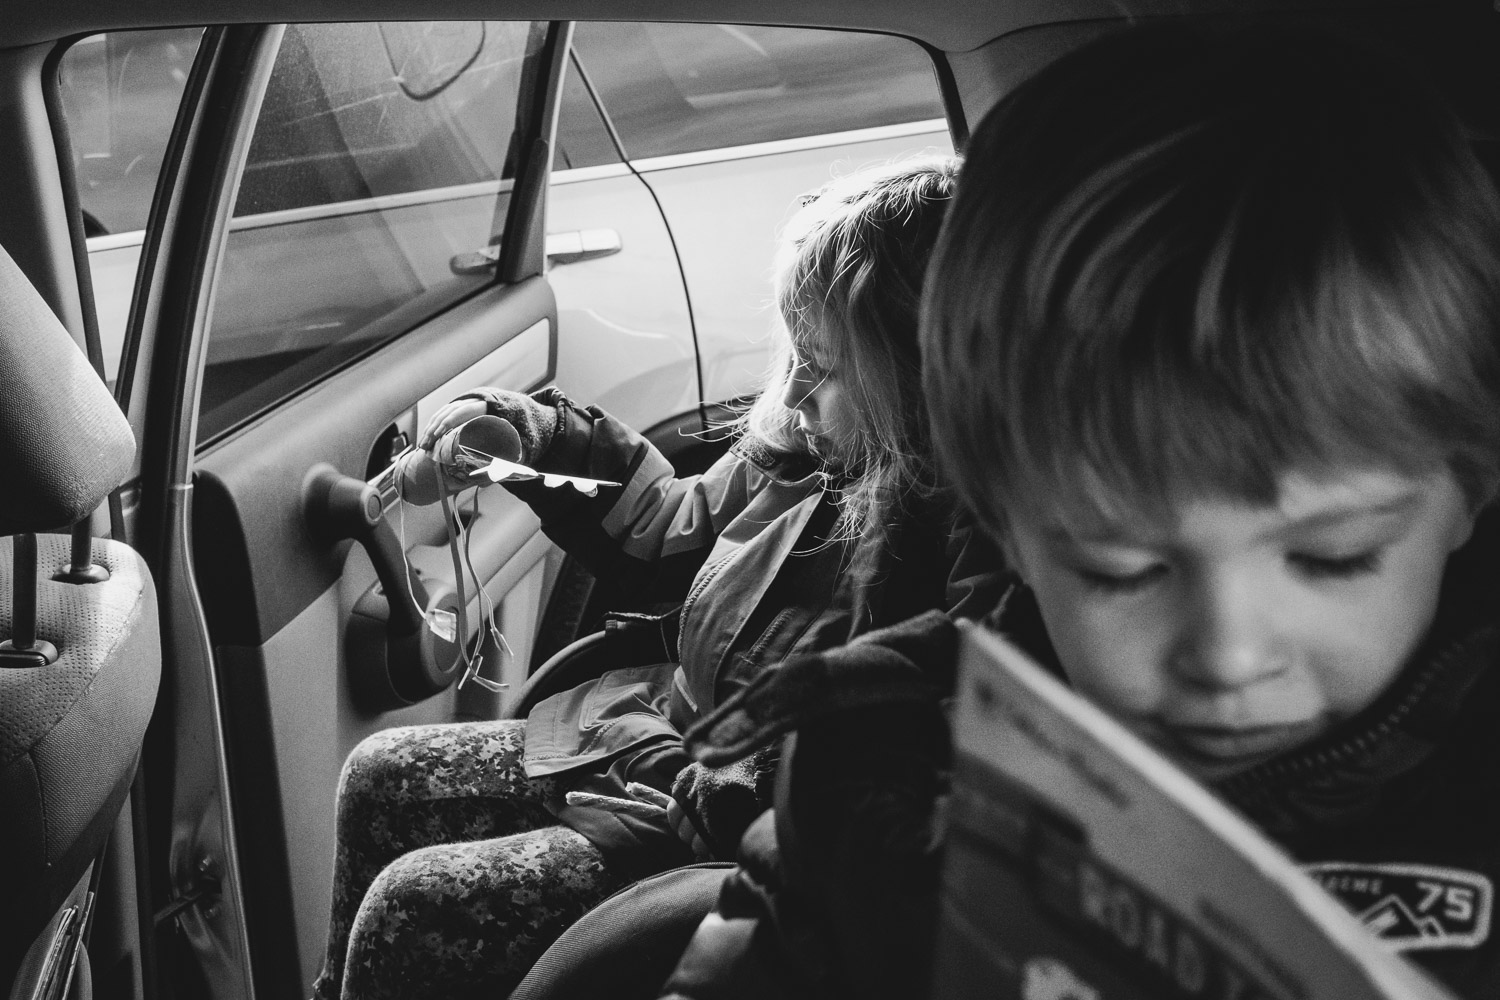 Kids reading books in the car.